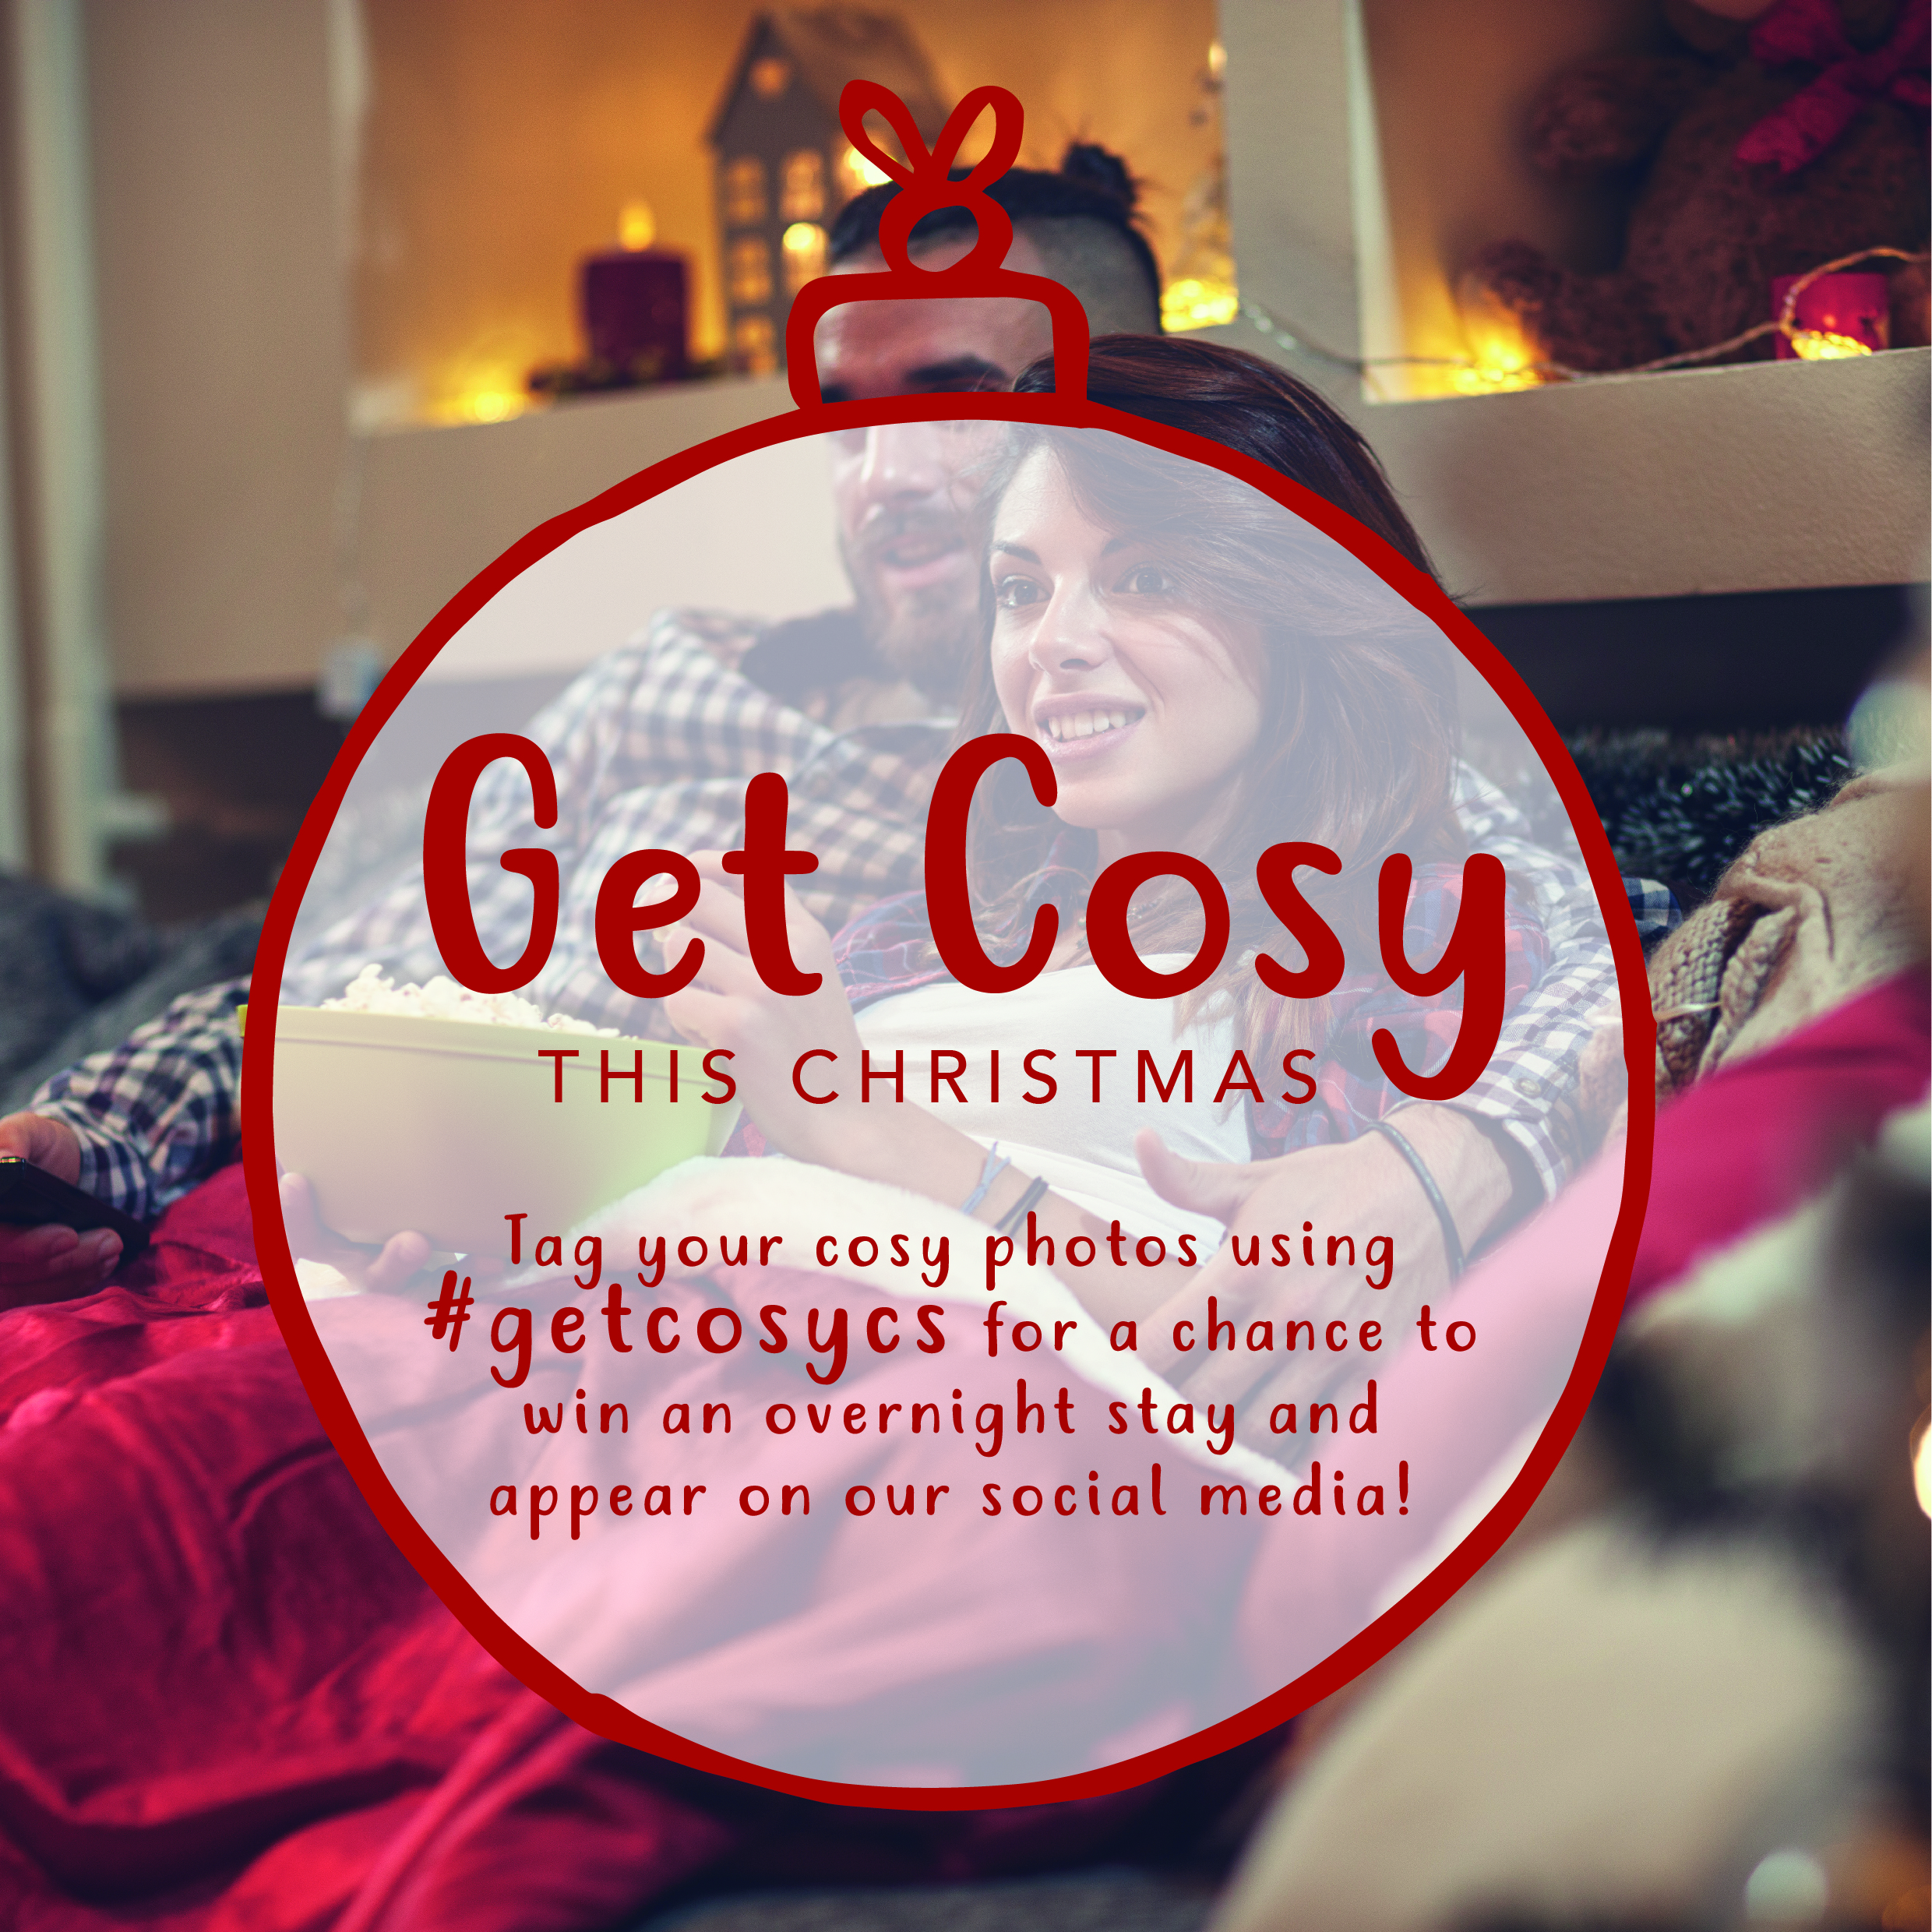 Get Cosy with City Stay Apartments! - Competition